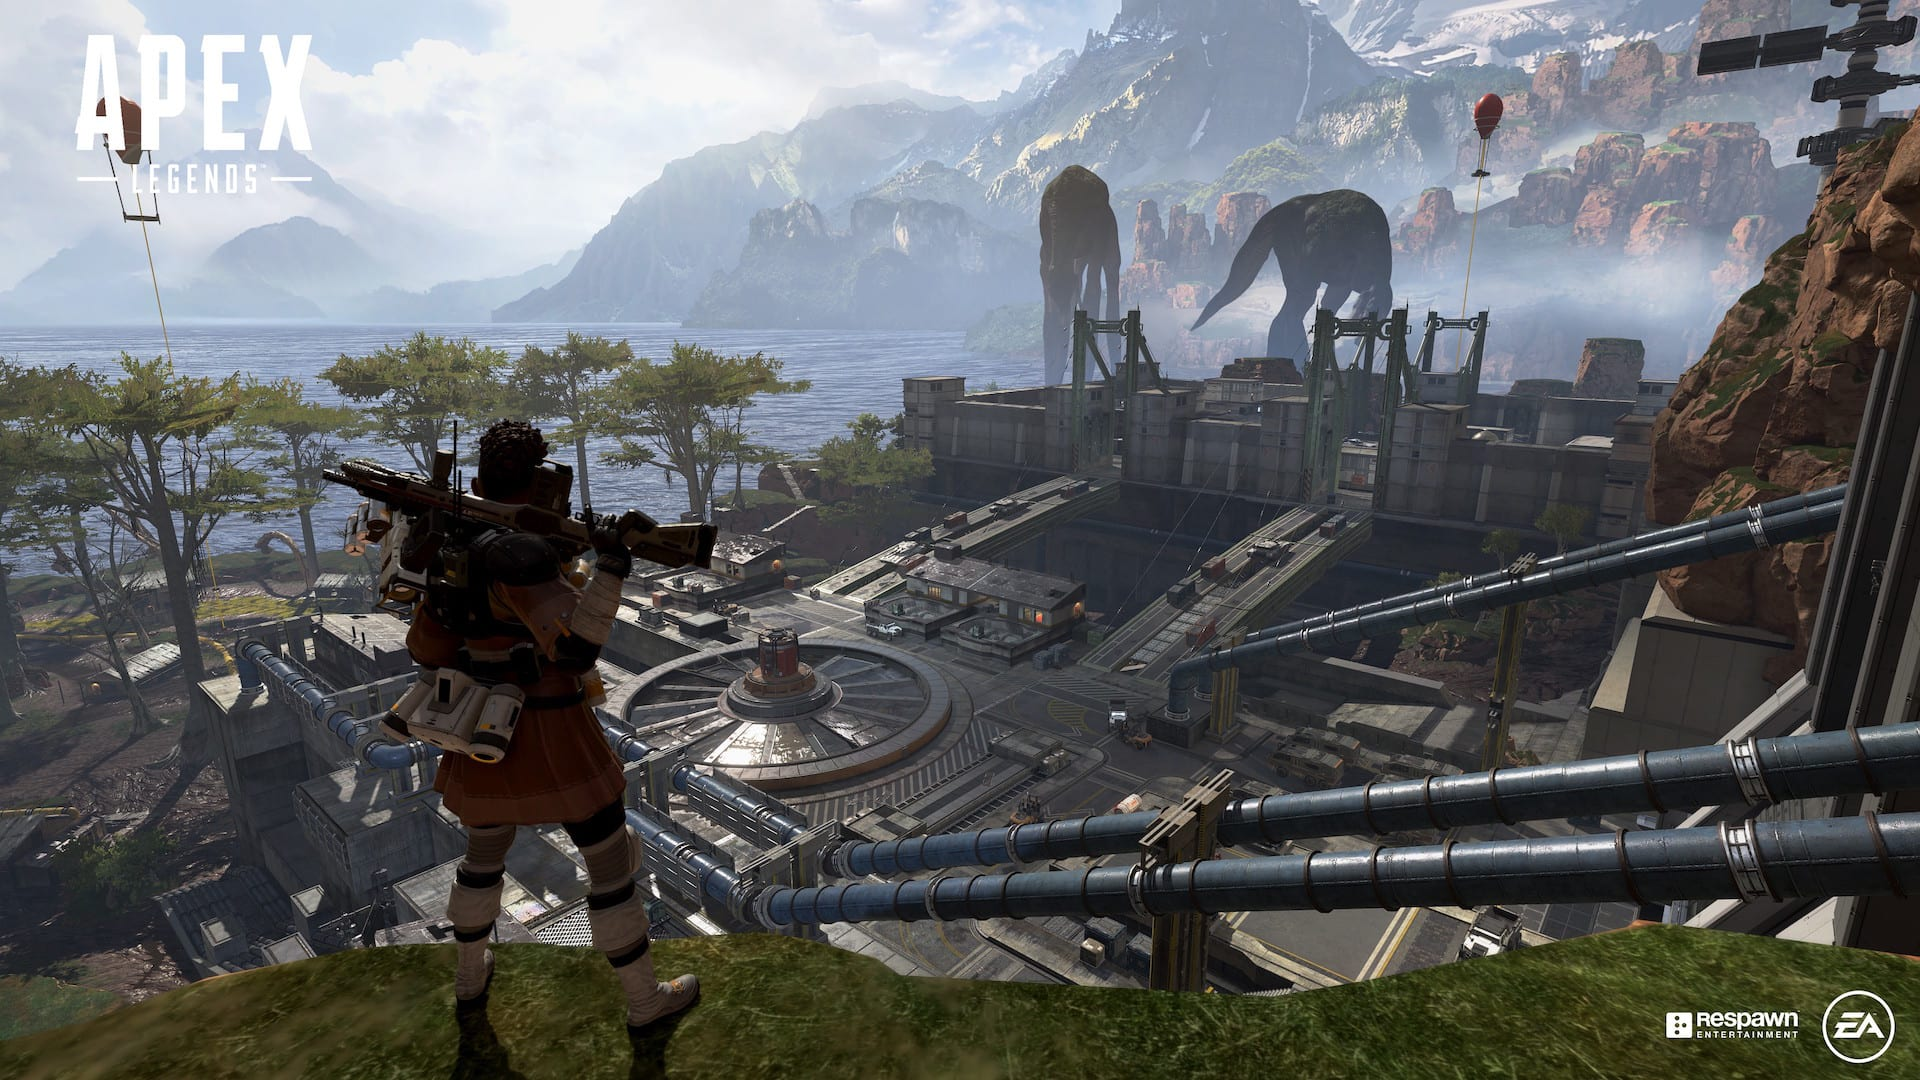 The next Apex Legends Patch will address hit registration bugs, the Fortified bug, and more.